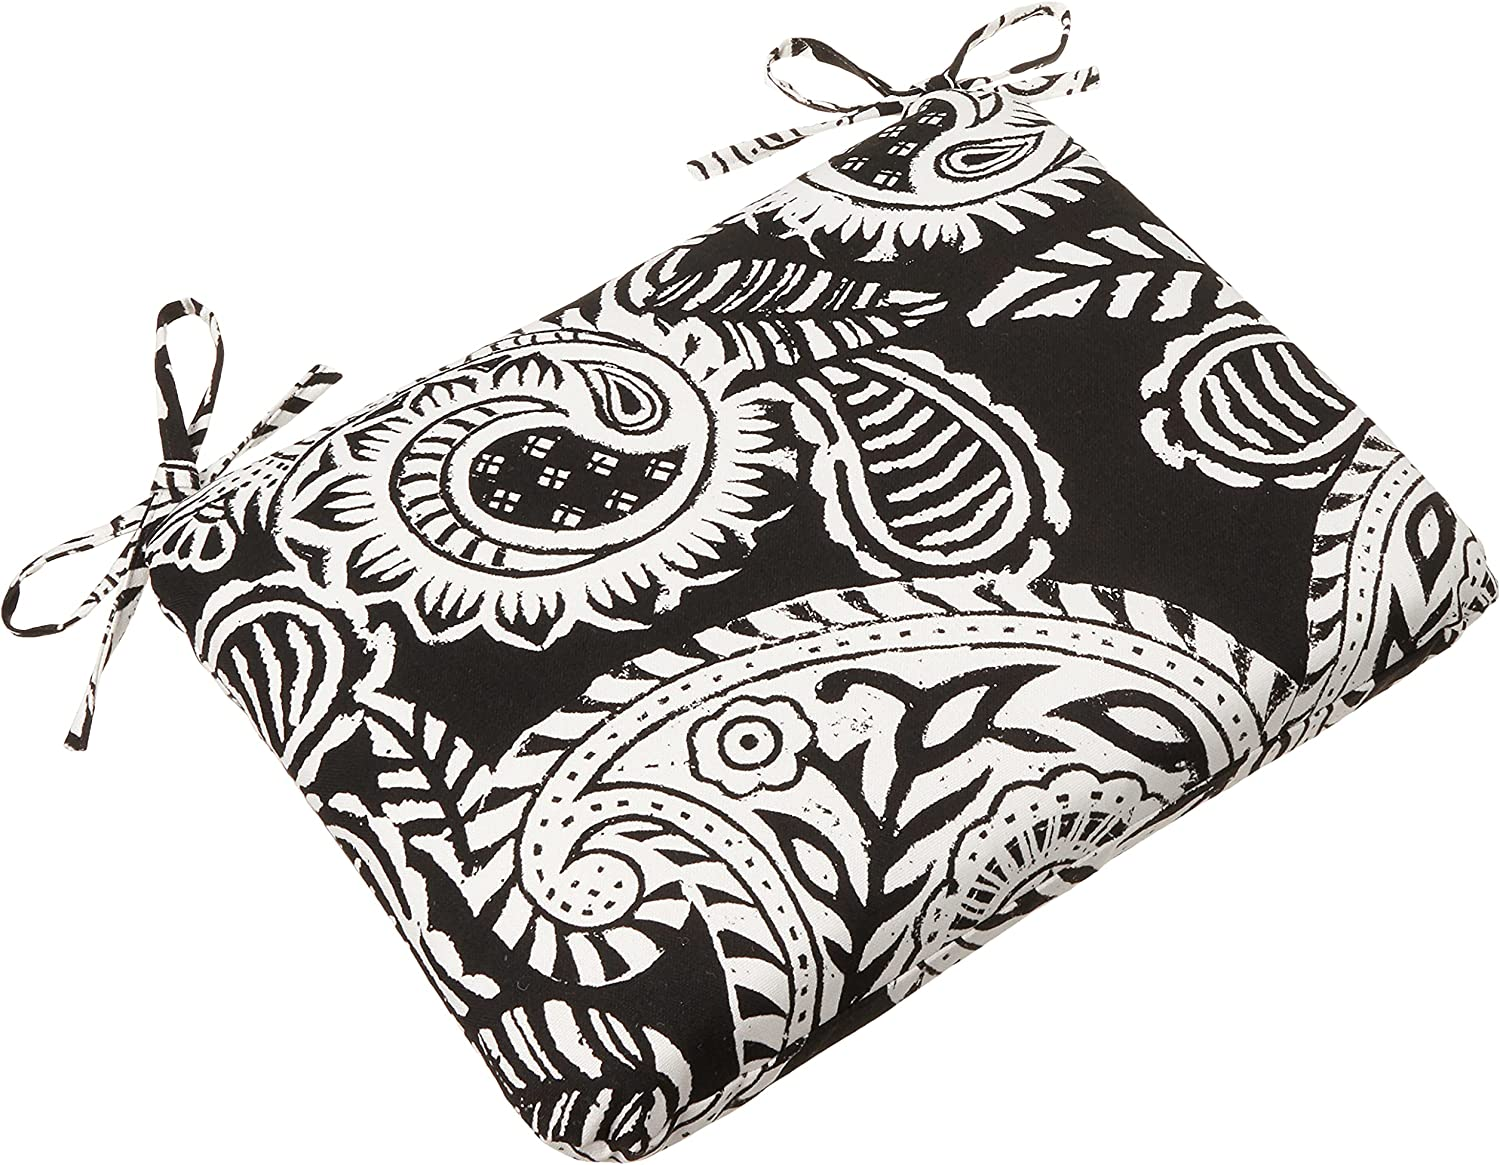 Pillow Perfect Outdoor Indoor Addie Night Round Cush 35% OFF Corner Seat New products, world's highest quality popular!